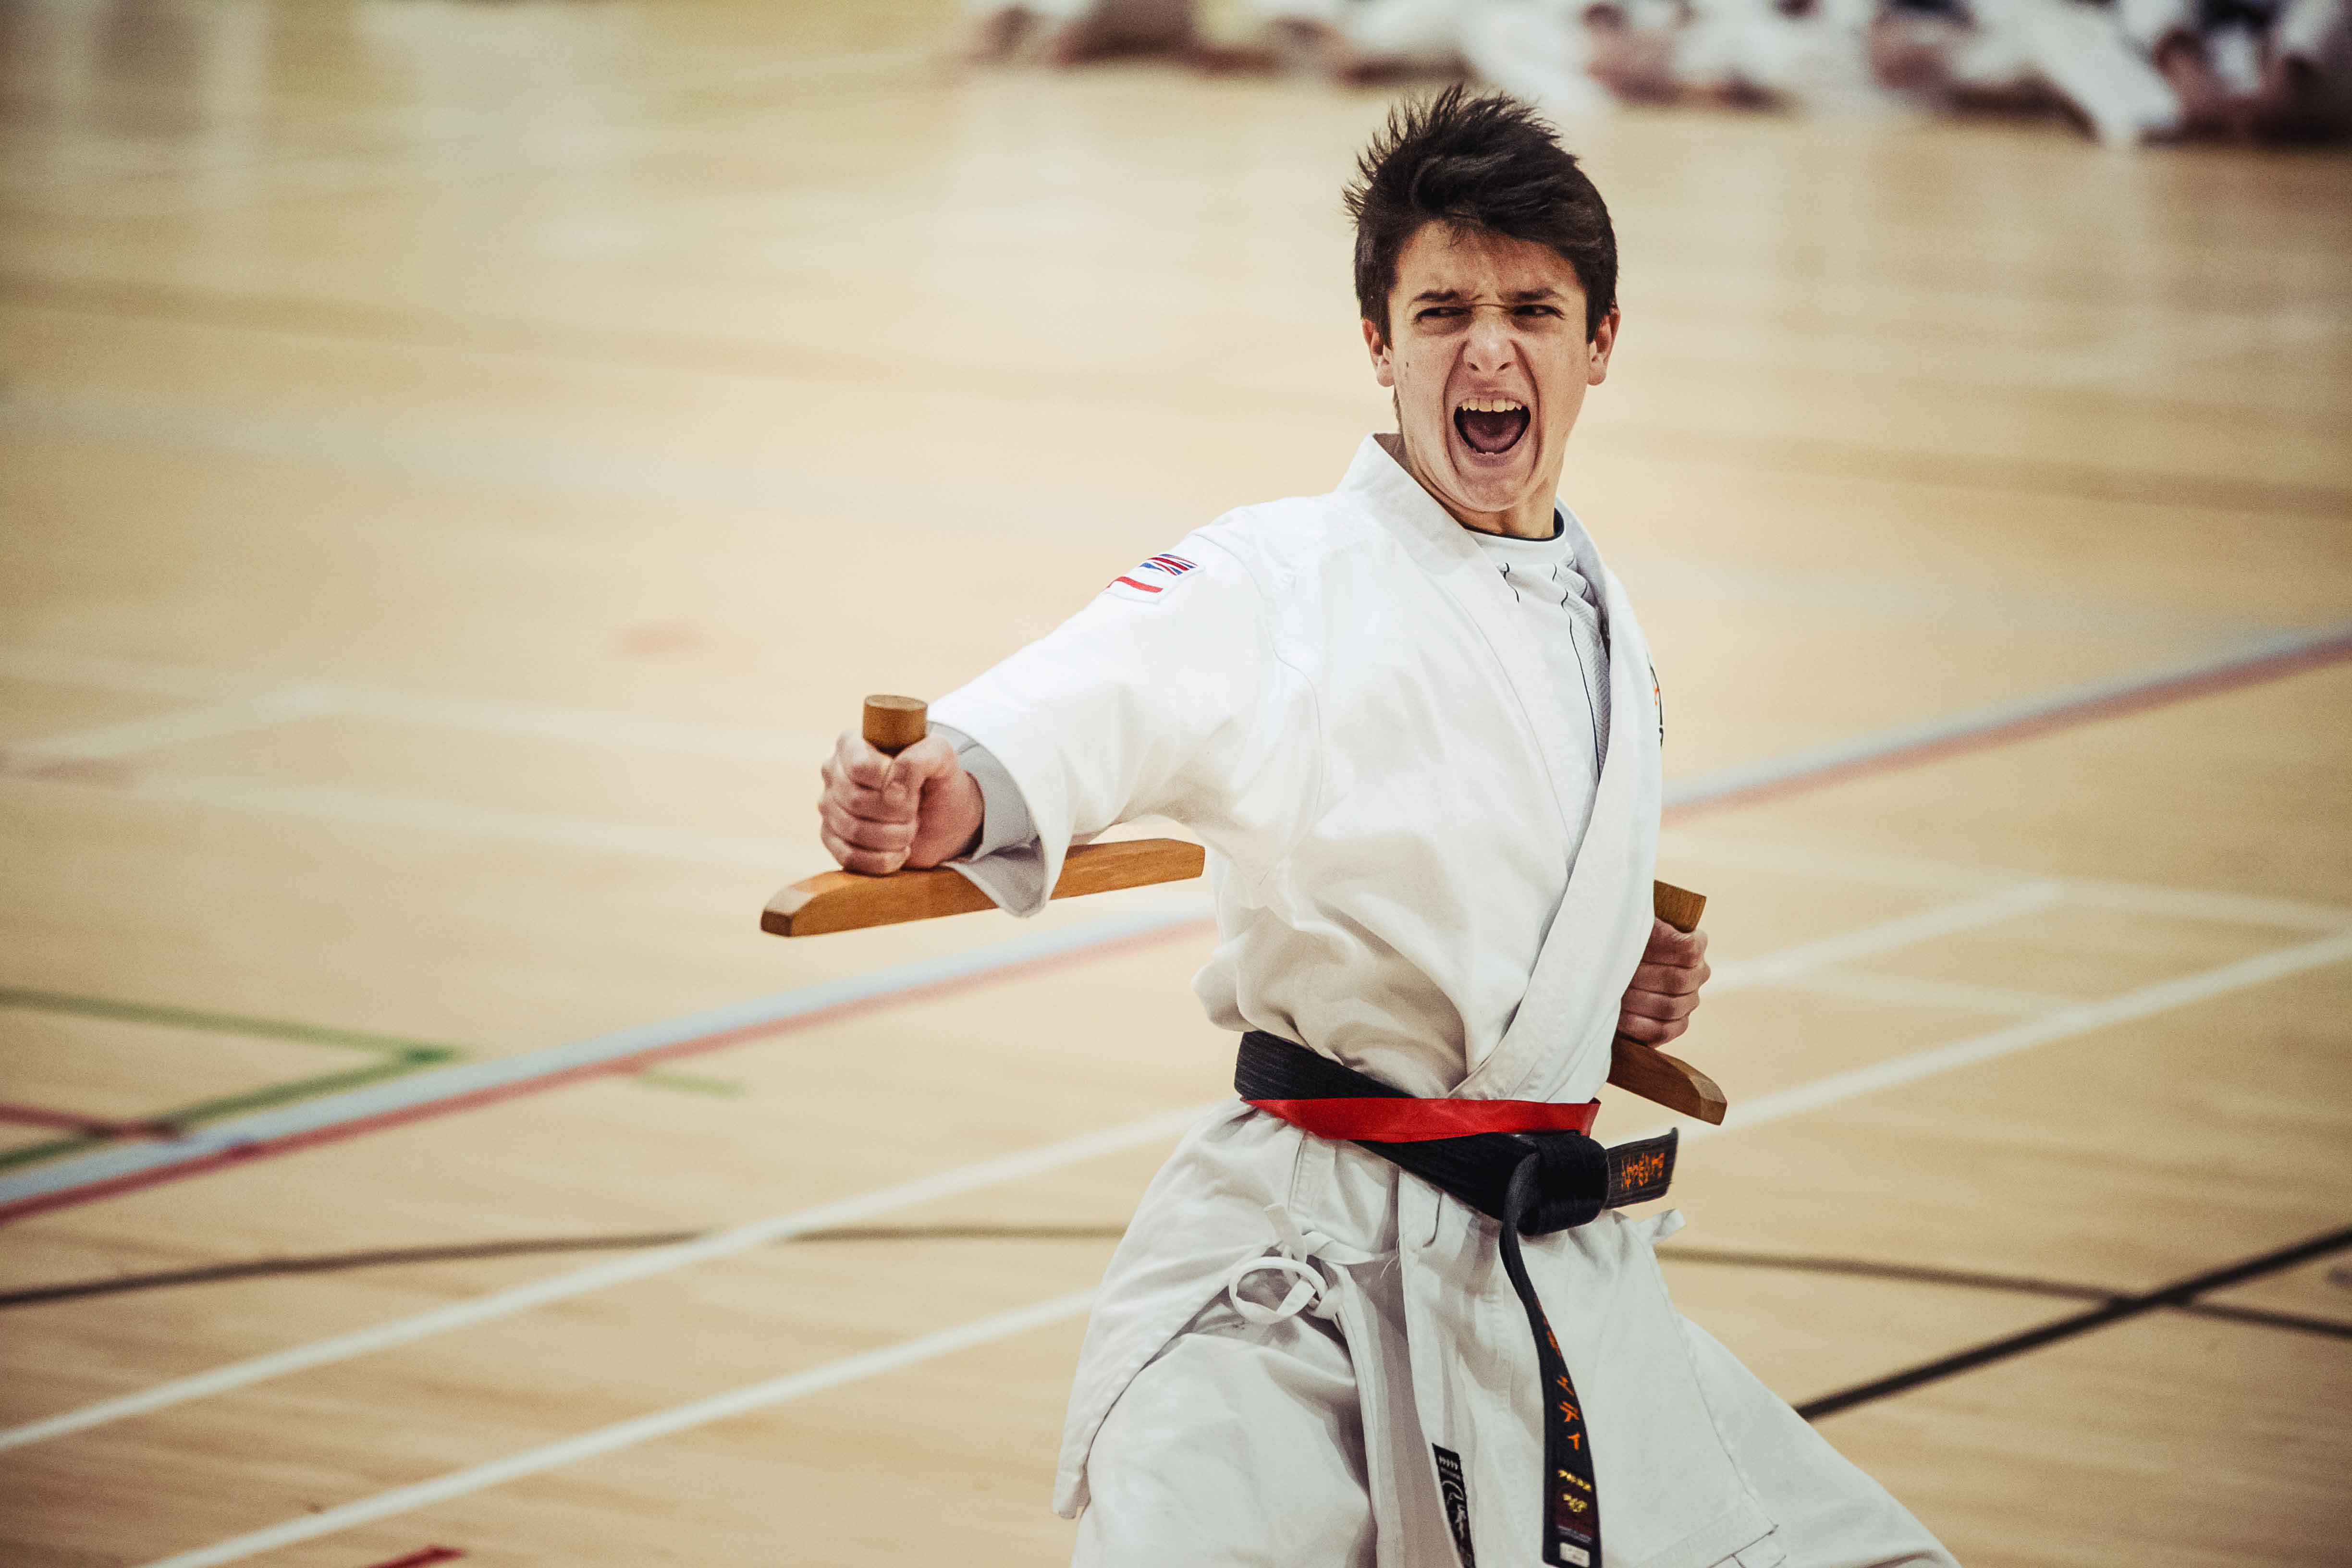 Renshinkan Karate England  The heart of traditional karate